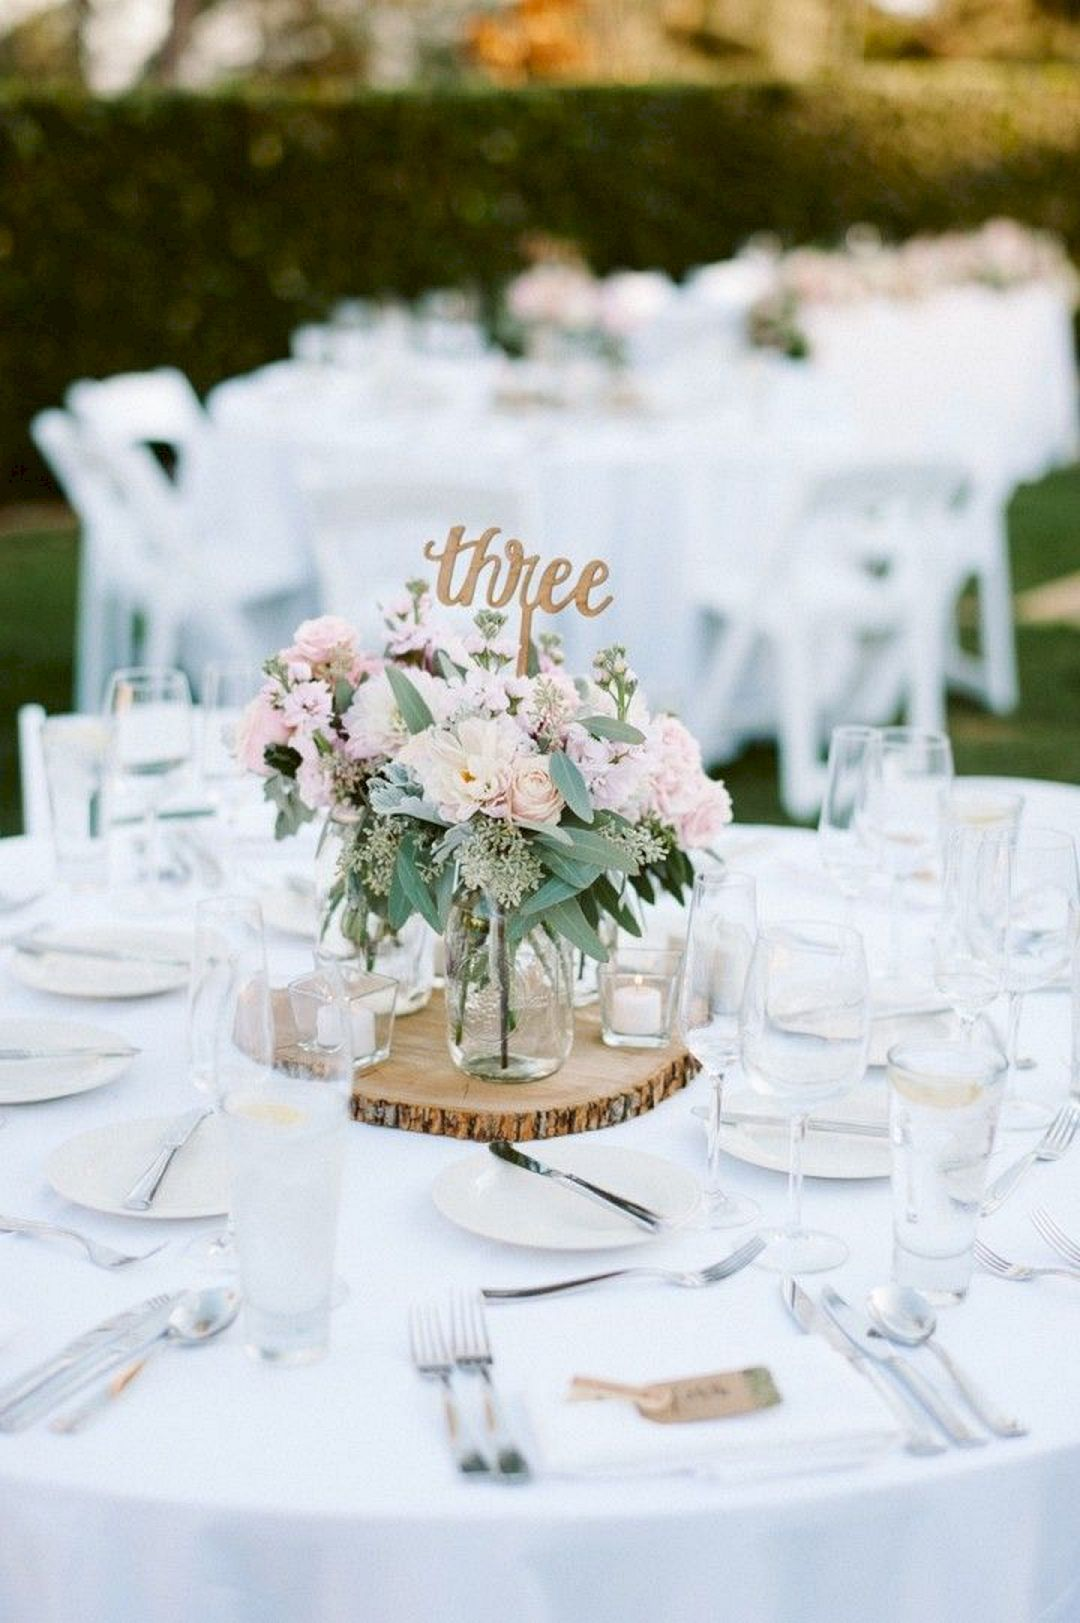 Diy rustic wedding decor ideas   Marvelous DIY Rustic u Cheap Wedding Centerpieces Ideas  Log